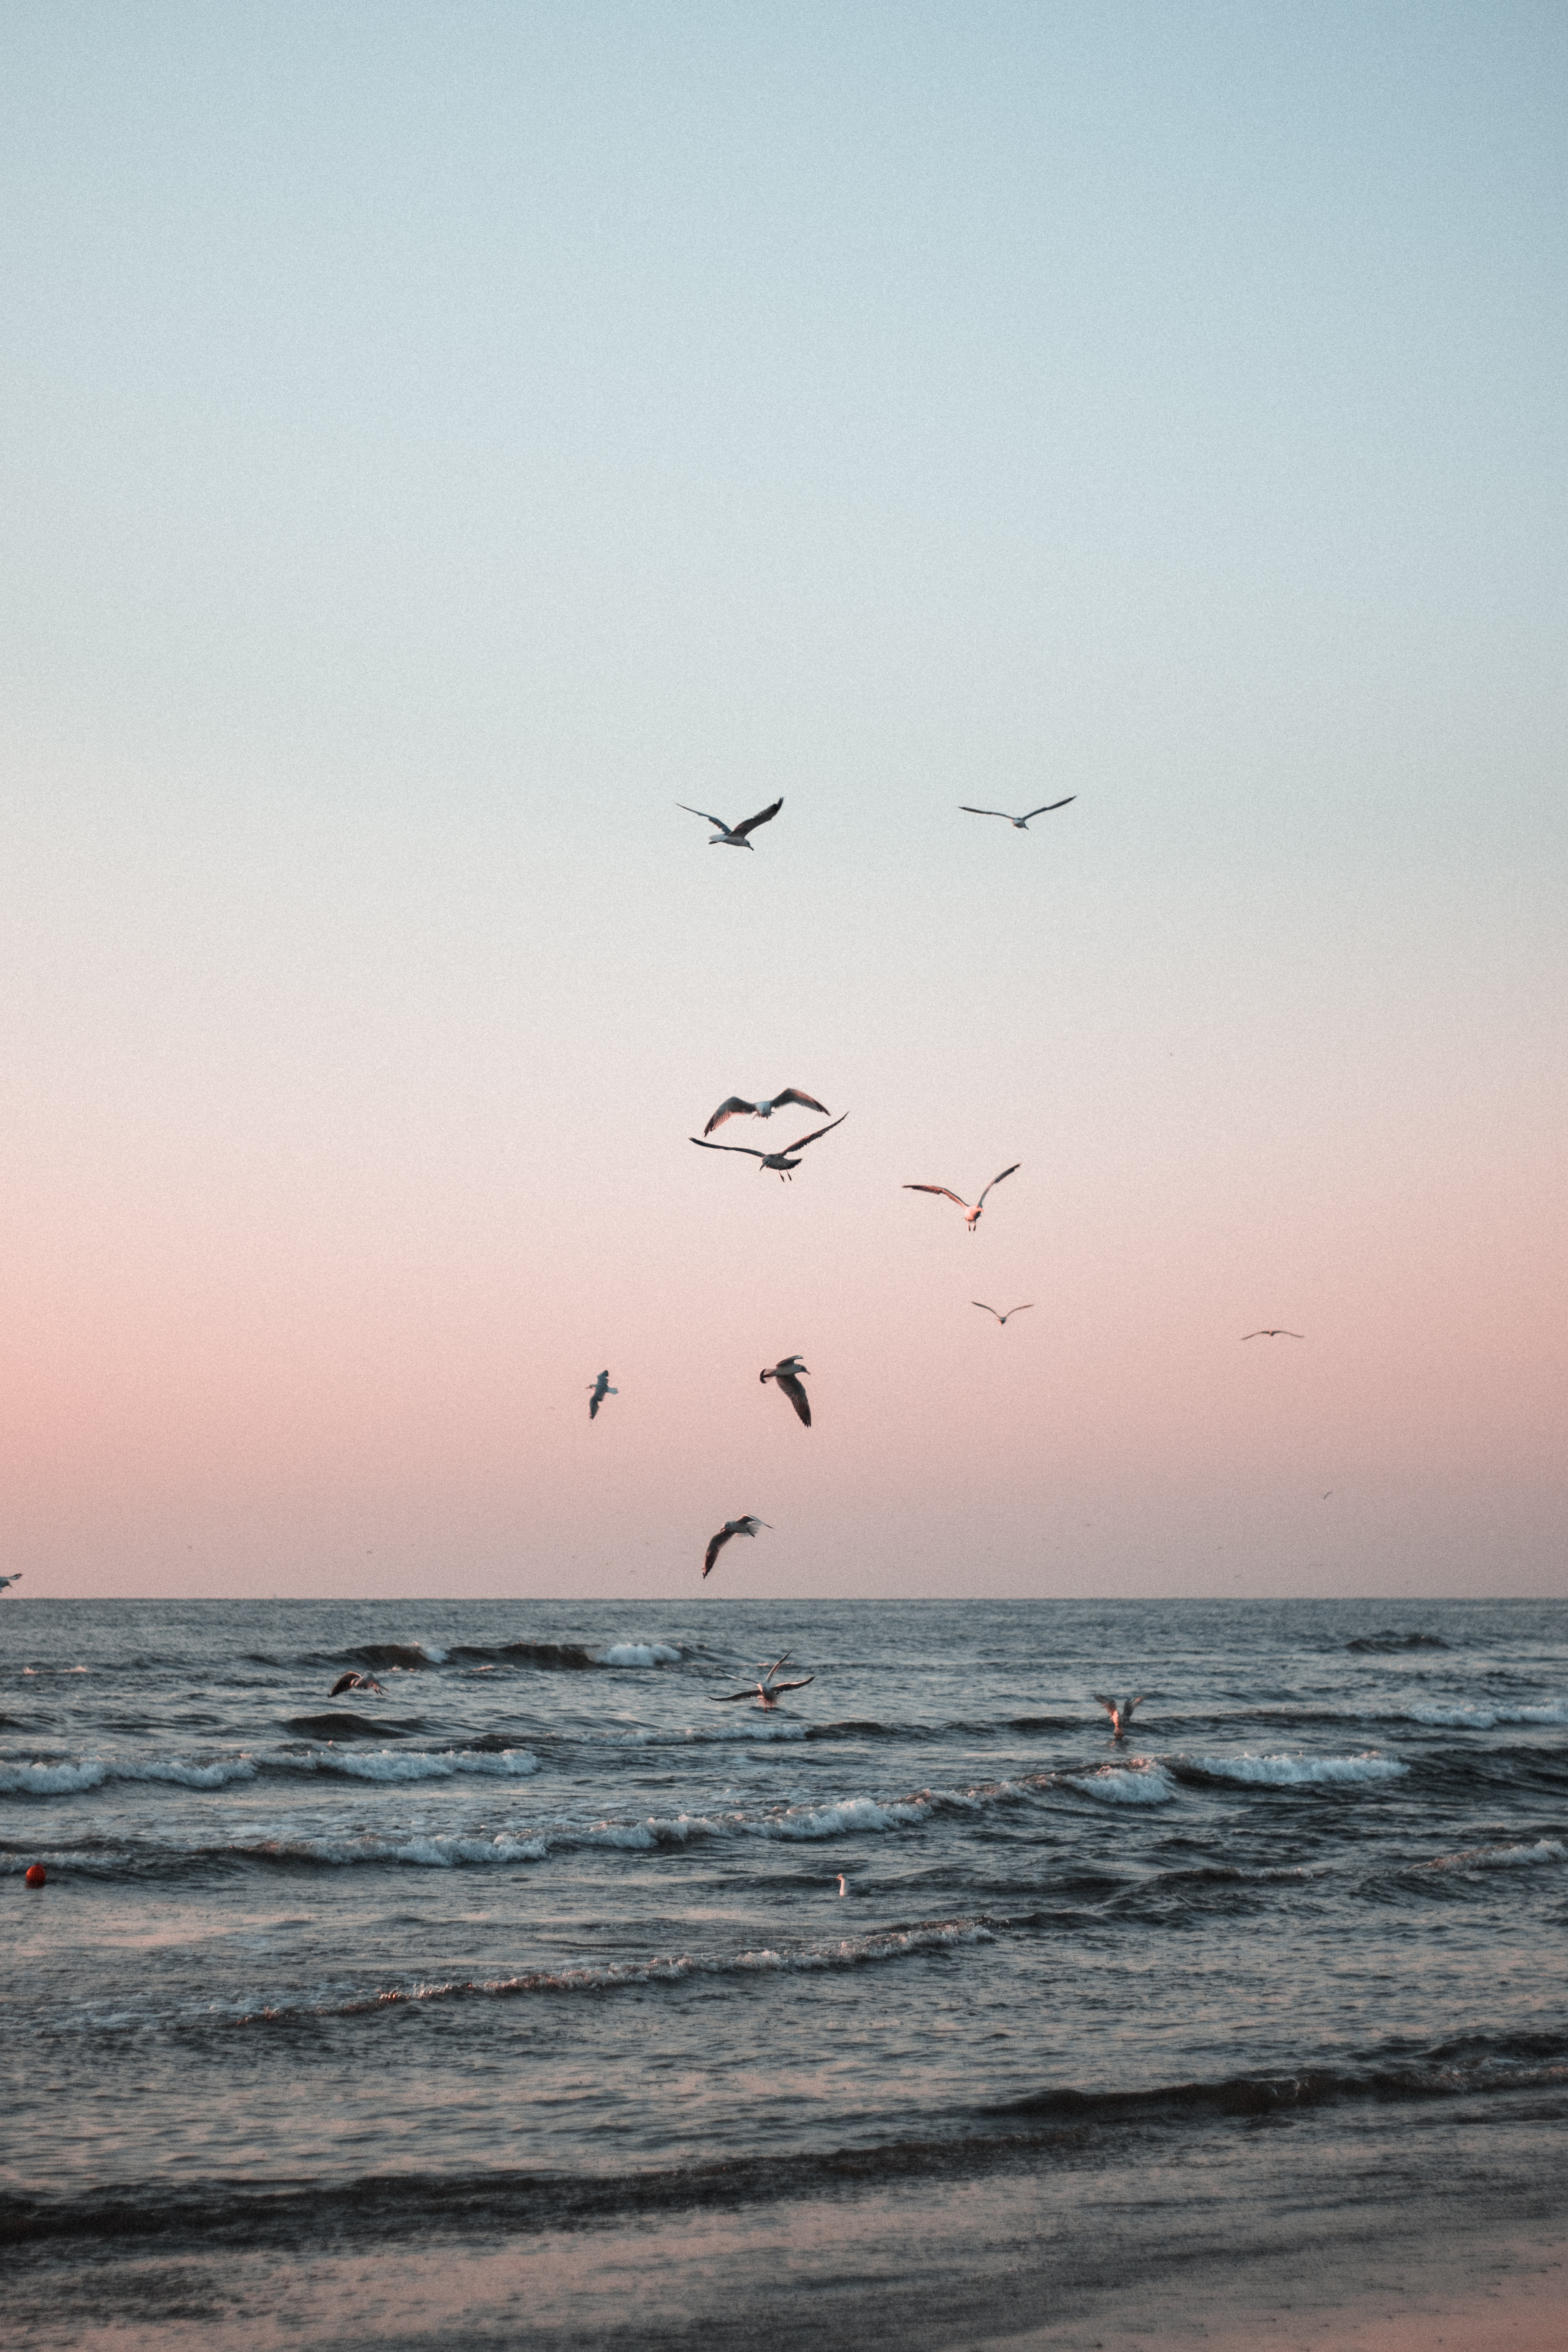 148158 download wallpaper Nature, Sea, Coast, Waves, Birds, Seagulls screensavers and pictures for free